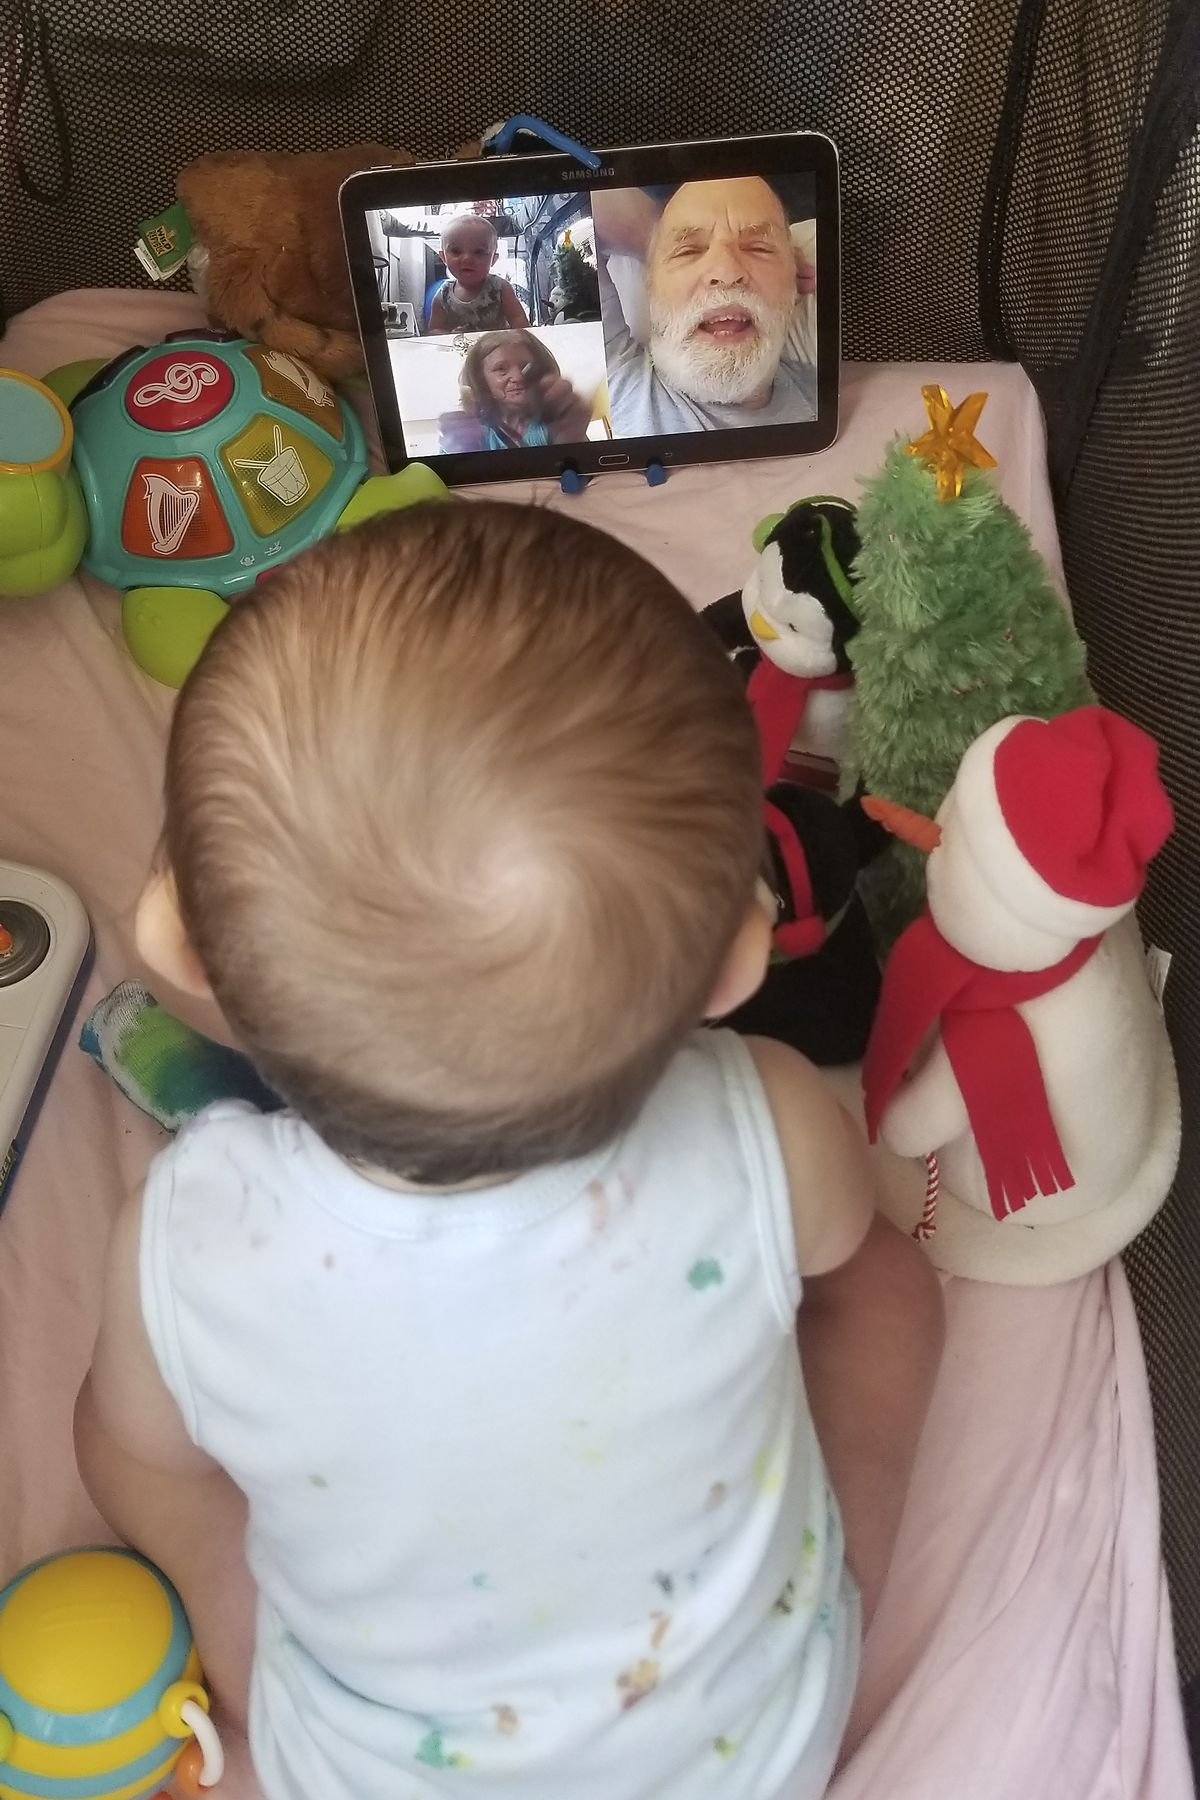 In this photo provided by Julie Bufkin, her 7-month-old boy, Calvin, interacts with his grandparents, Debbie and Allan Cameron, in Chandler, Arizona, on a FaceTime video call from his crib in Tempe, Arizona.